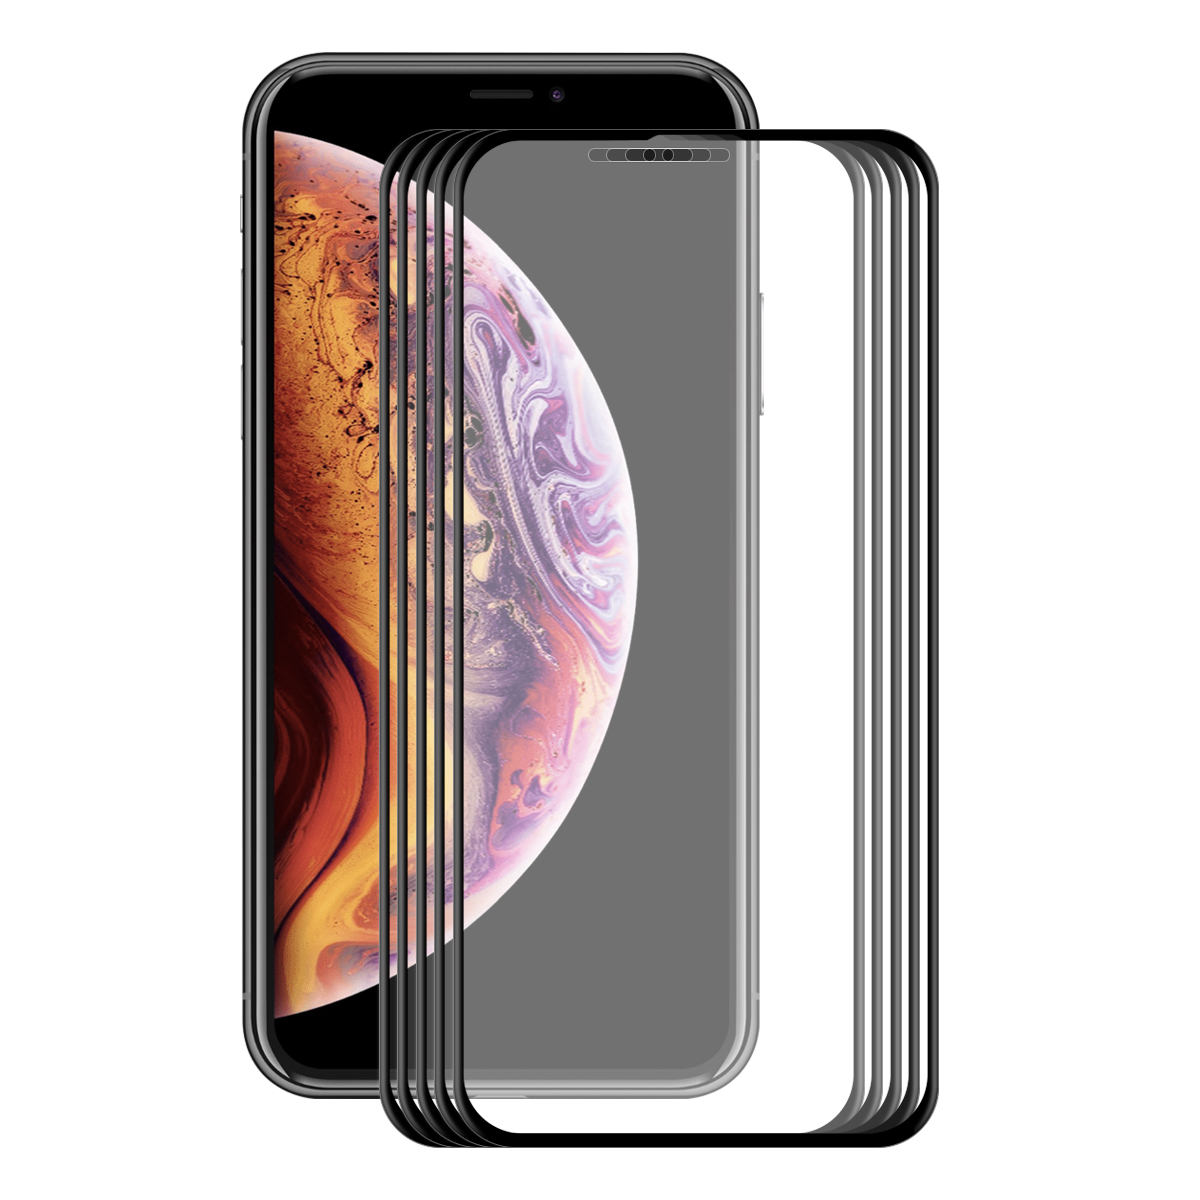 5 Packs Bakeey Screen Protector For iPhone XR 3D Soft Edge Carbon Fiber Tempered Glass Film